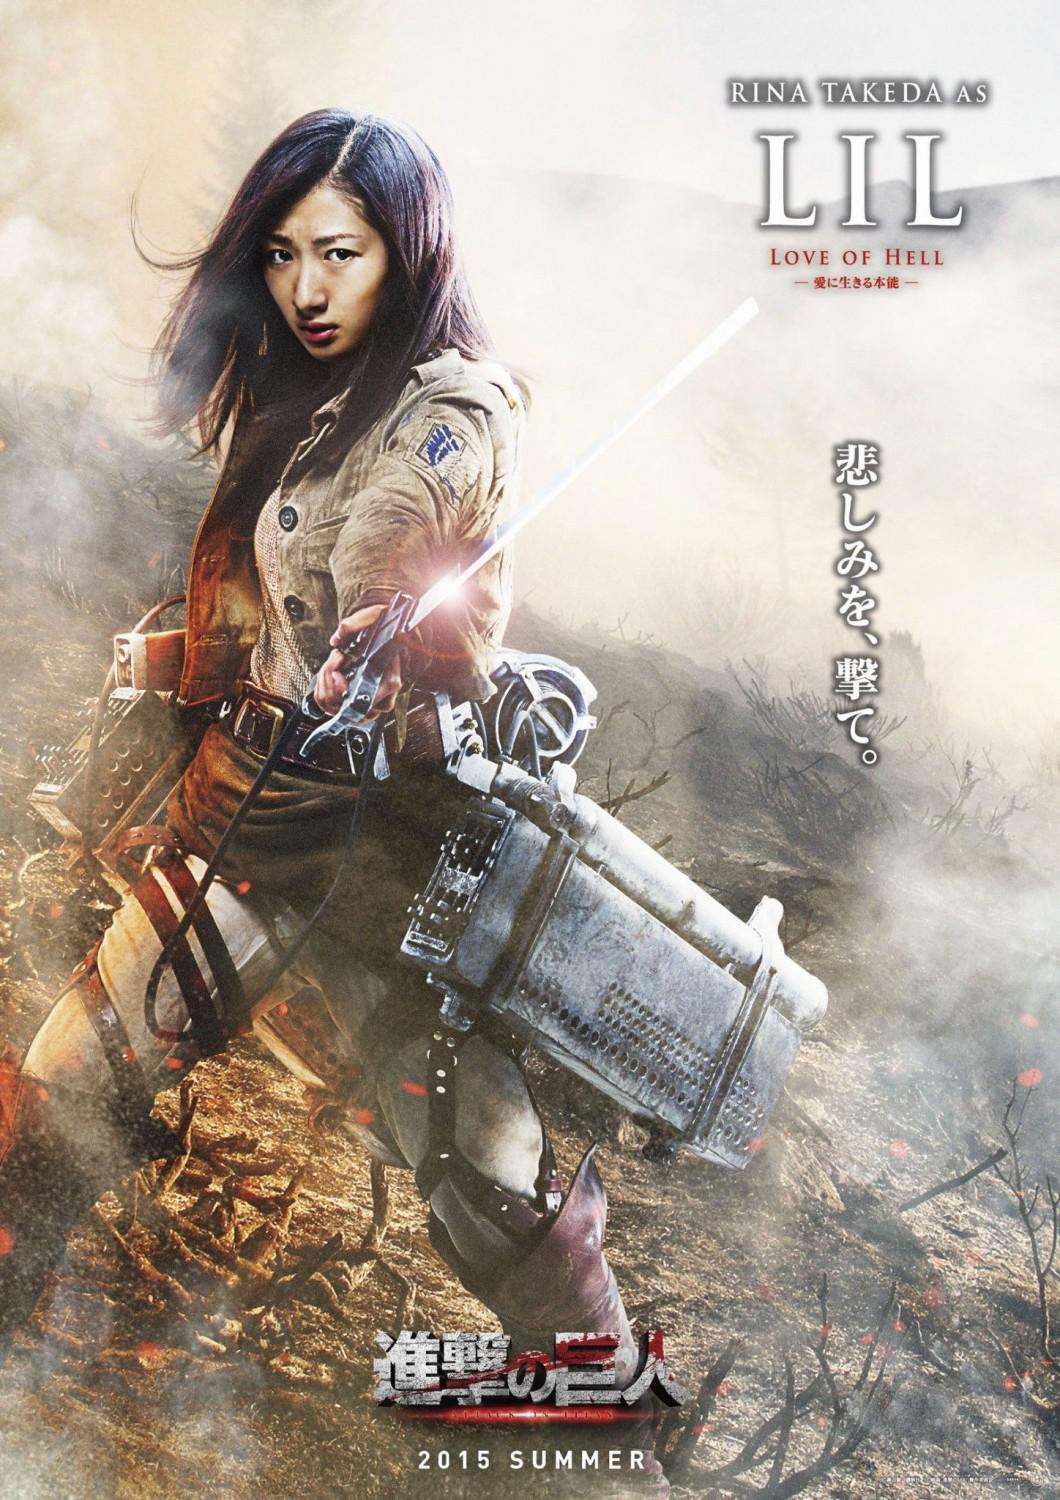 Attacco dei Giganti 1 - Shingeki no kyojin - Attack on Titan live action - Lil - Rina Takeda